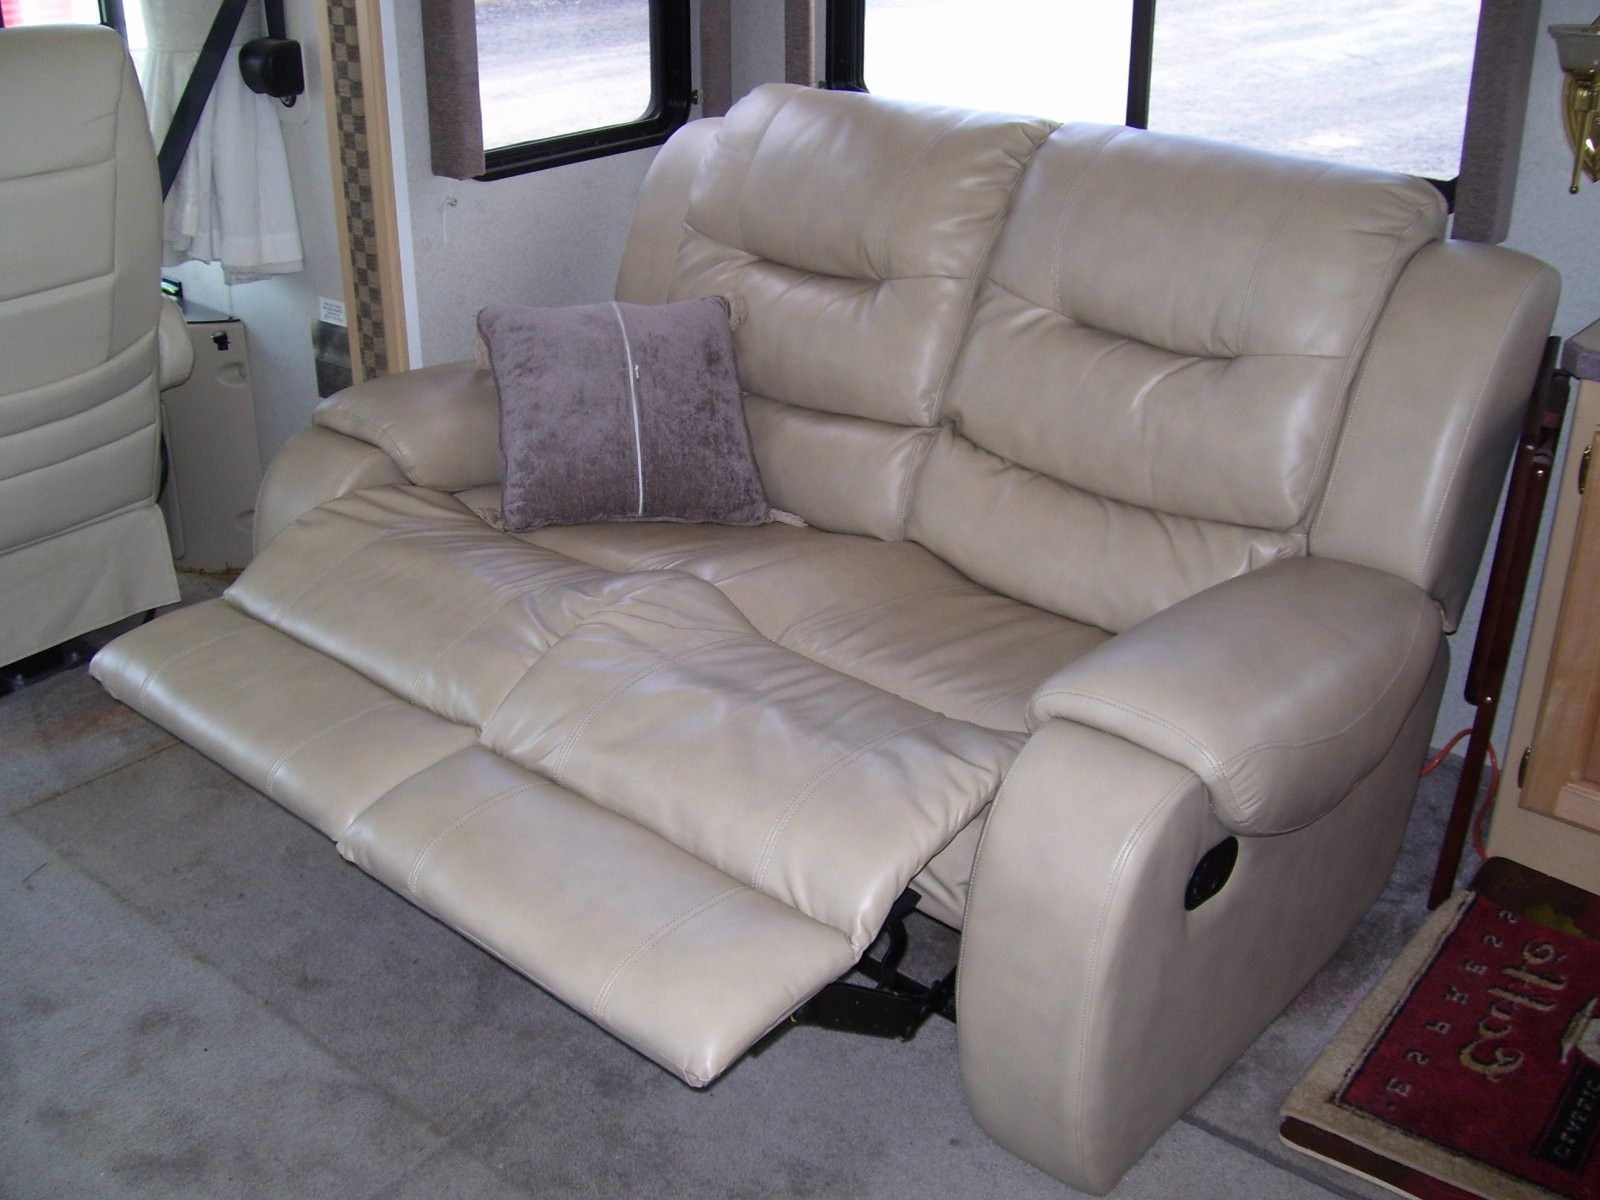 Surprising Good Rv Jackknife Sofa Cover Shot Rv Jackknife Sofa Cover Alphanode Cool Chair Designs And Ideas Alphanodeonline